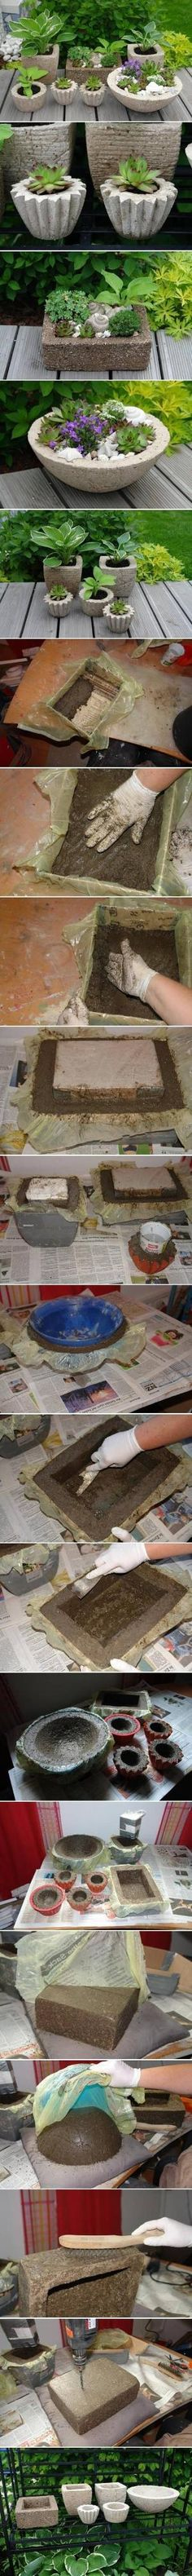 Make Your Own Concrete Planters by lindsay0